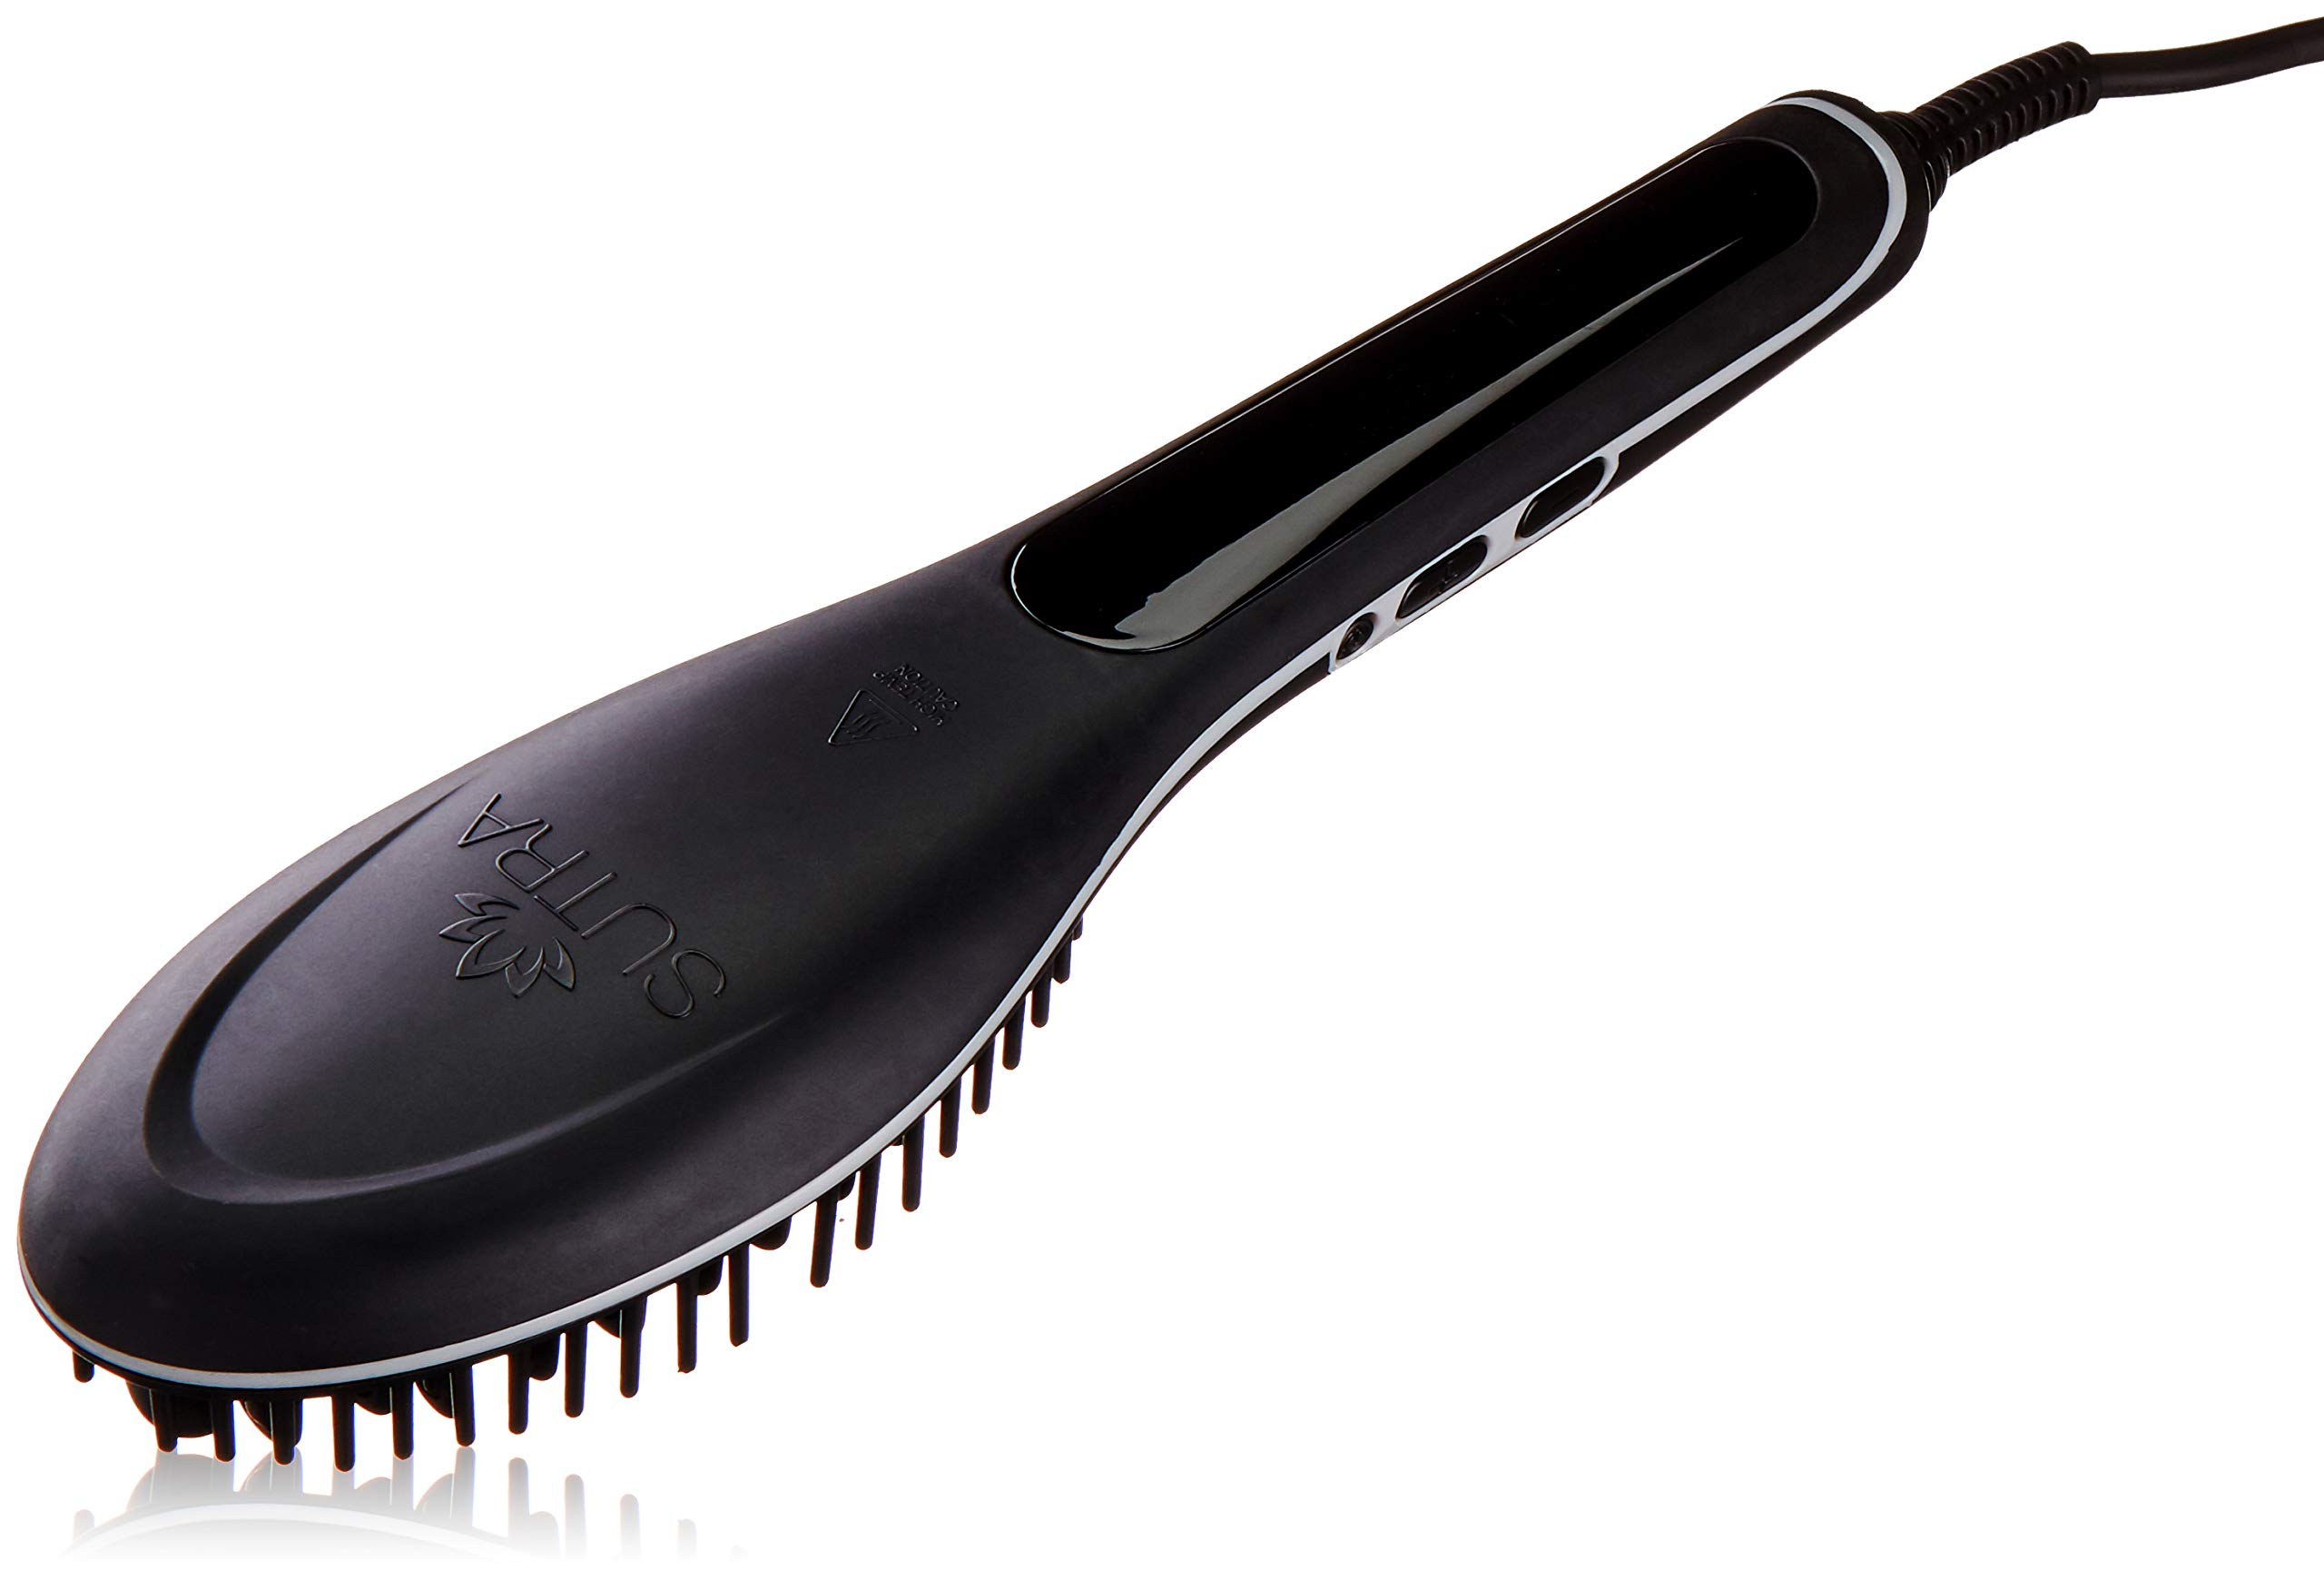 SUTRA Heat Brush 2.0, Black by SUTRA